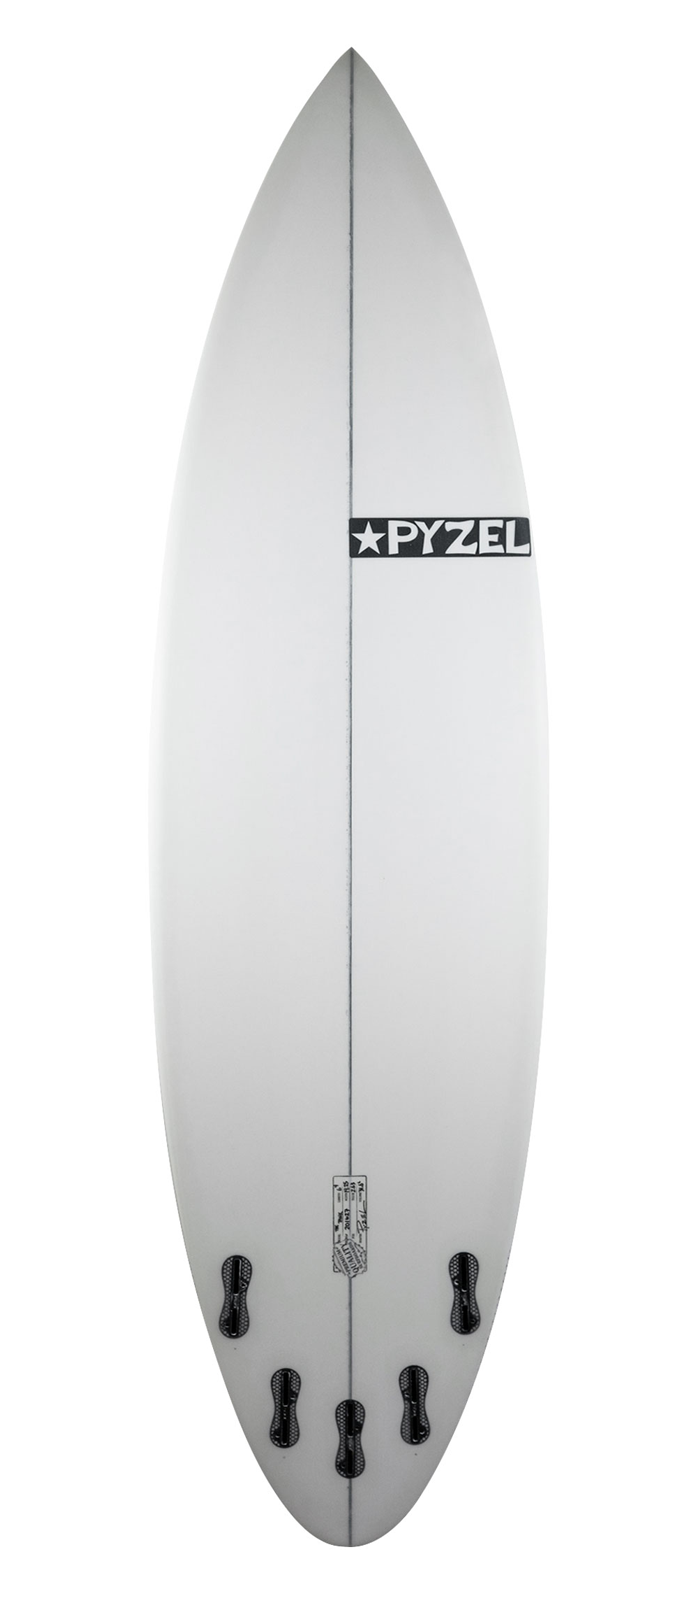 THE TANK surfboard model bottom